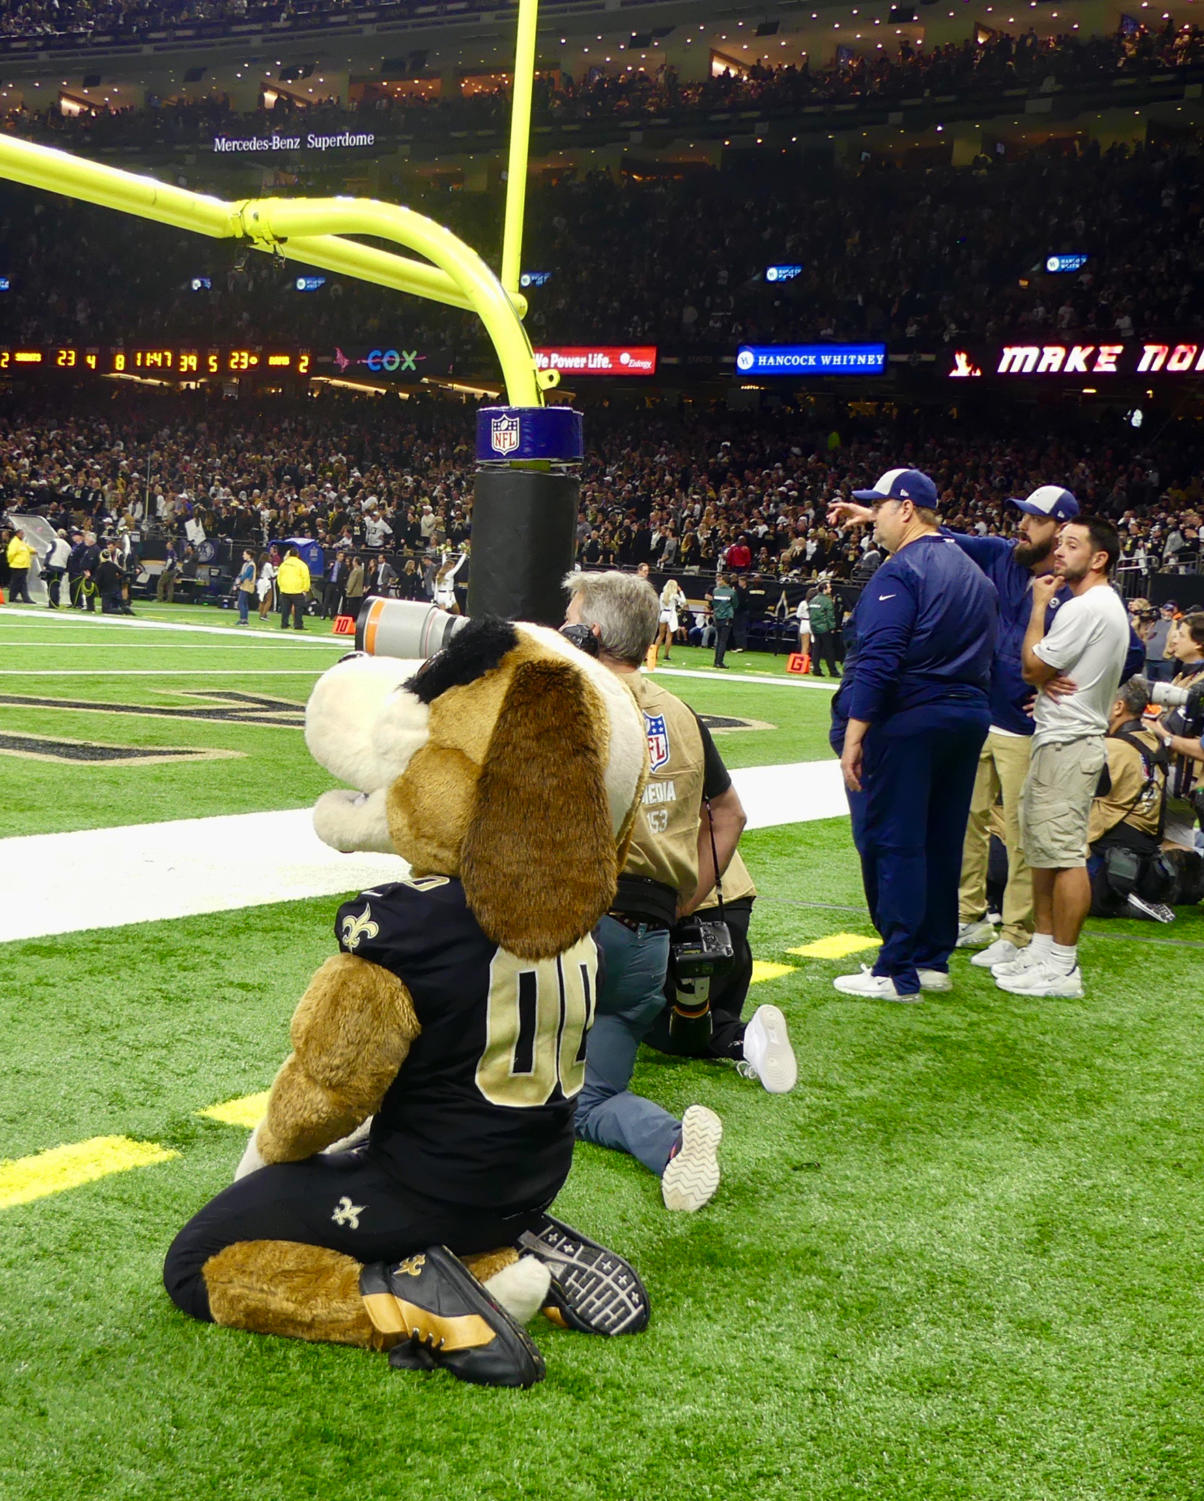 Gumbo%2C+the+Saints+mascot%2C+sits+on+the+sidelines+of+the+NFC+Championship.+Photo+credit%3A+Olivia+Ledet